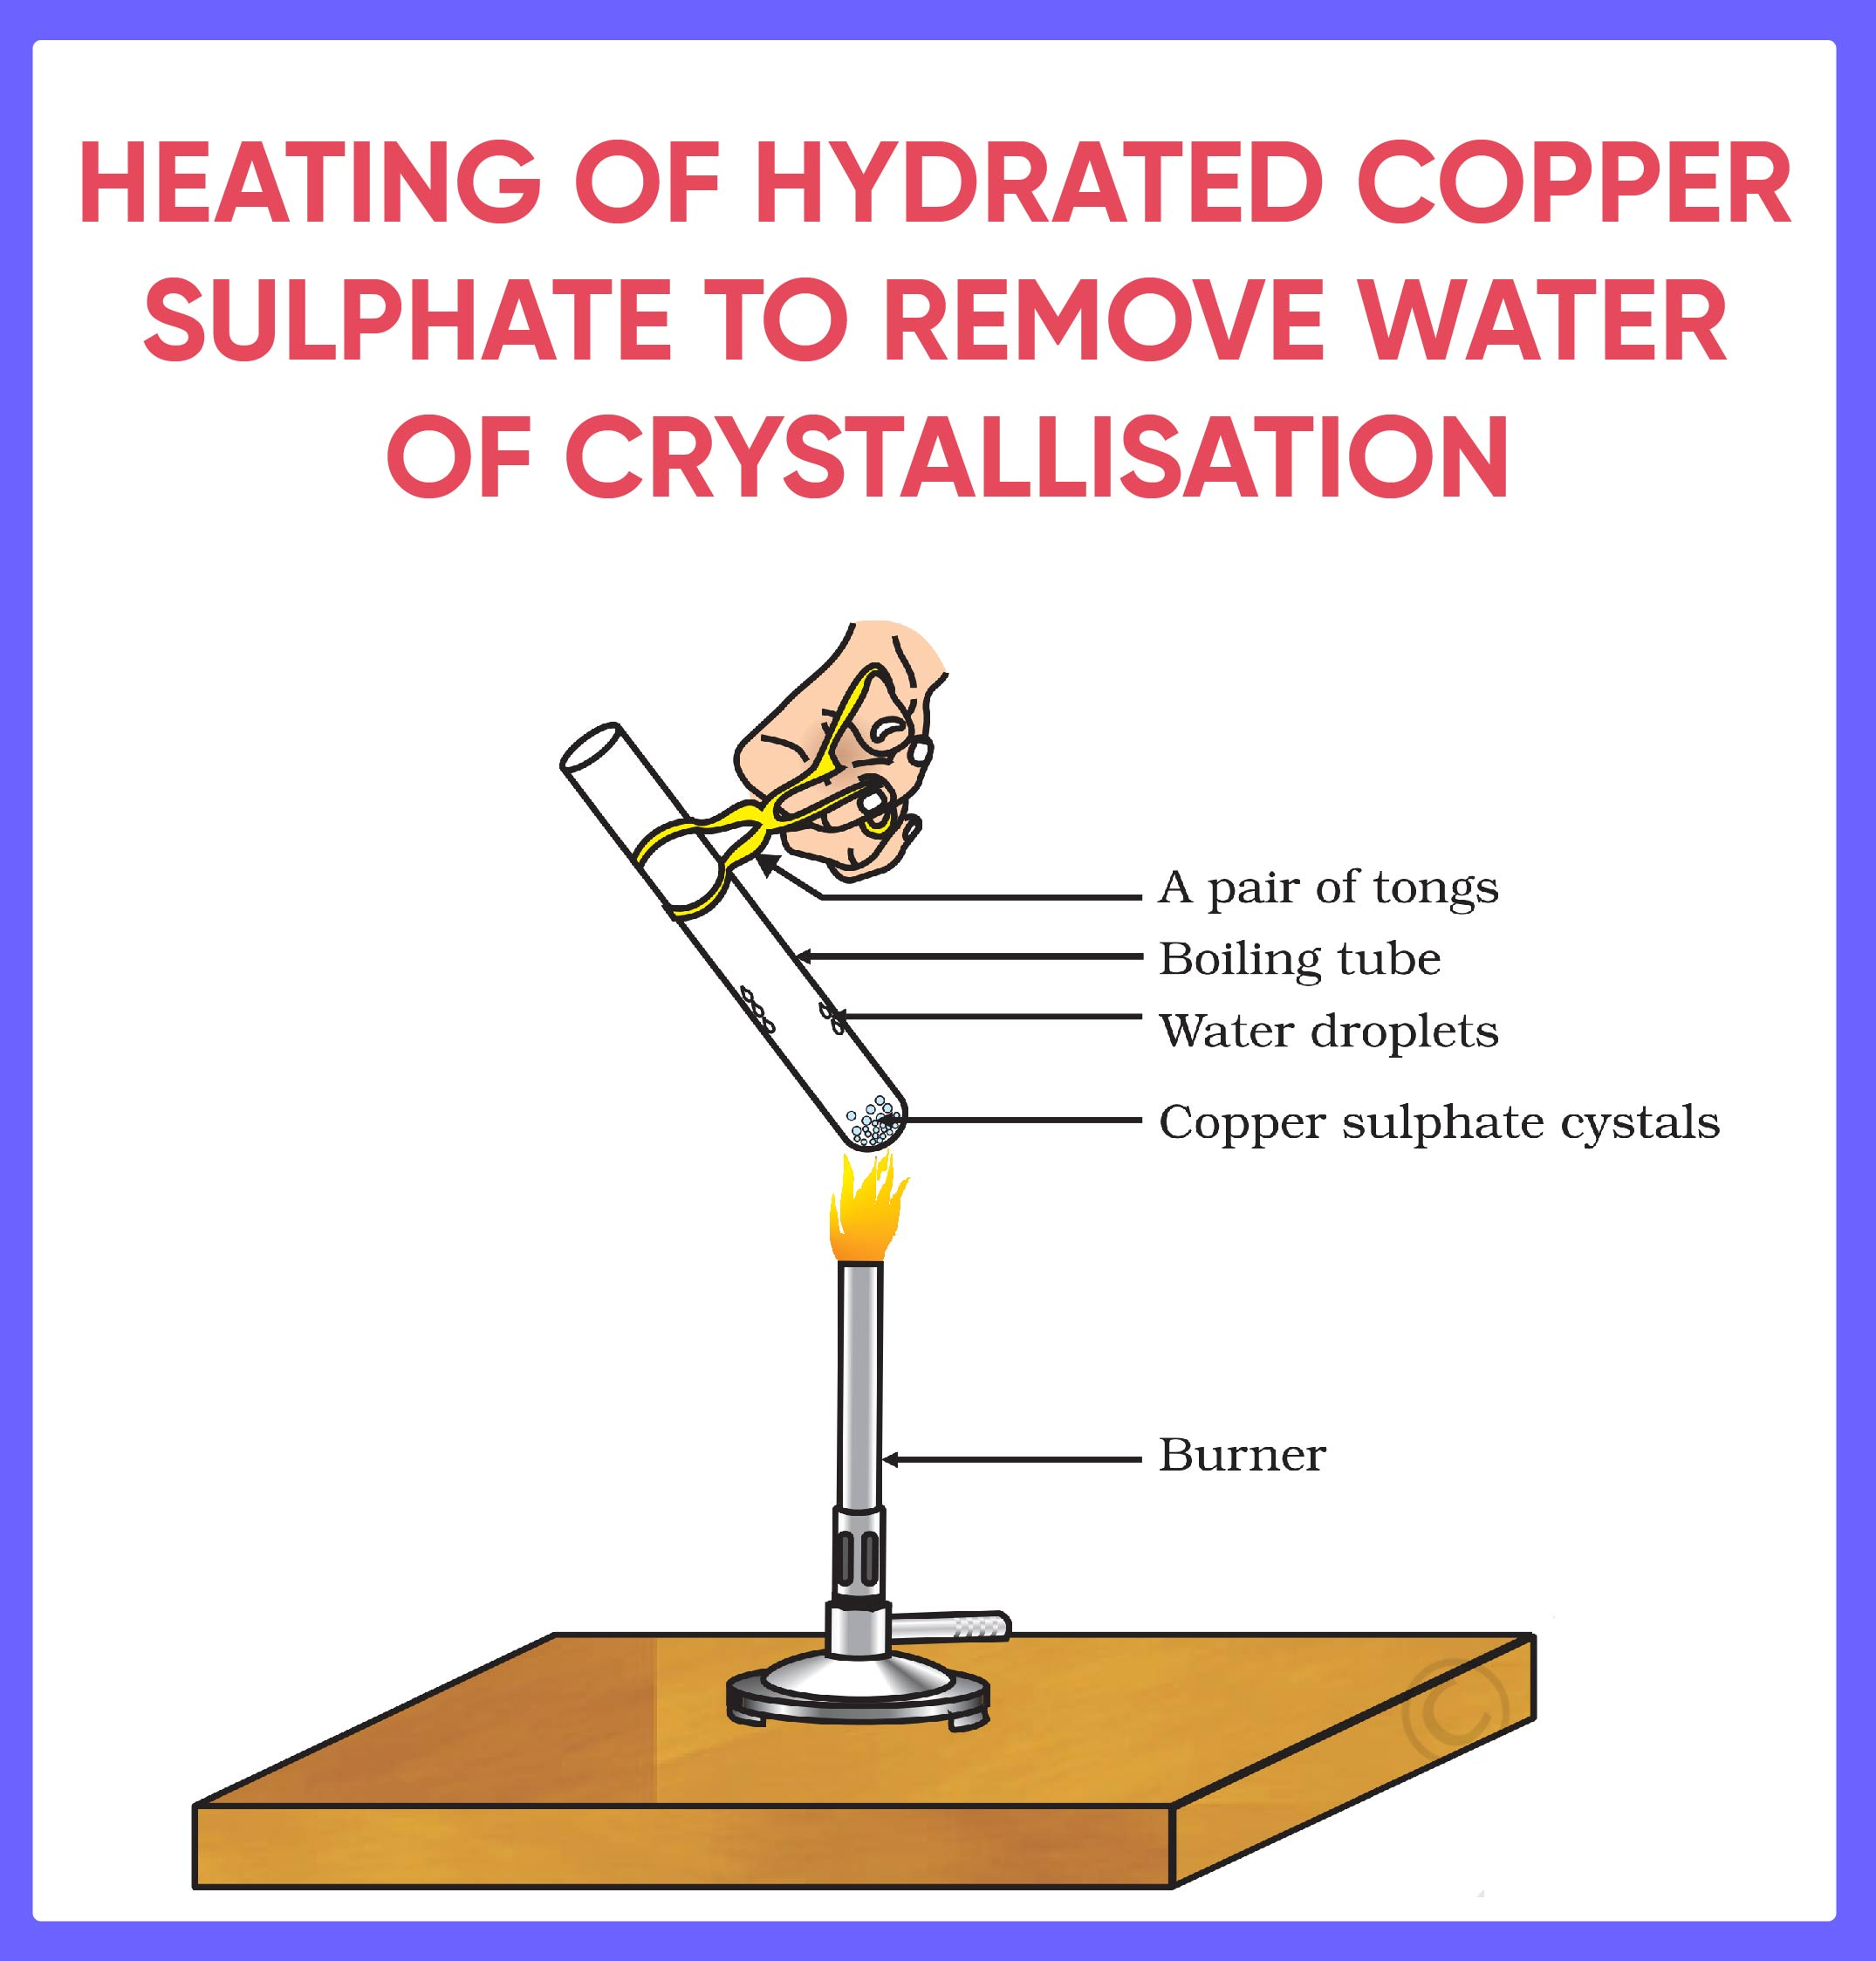 Heating of Hydrated Copper Sulphate to remove water of crystallisation.jpg